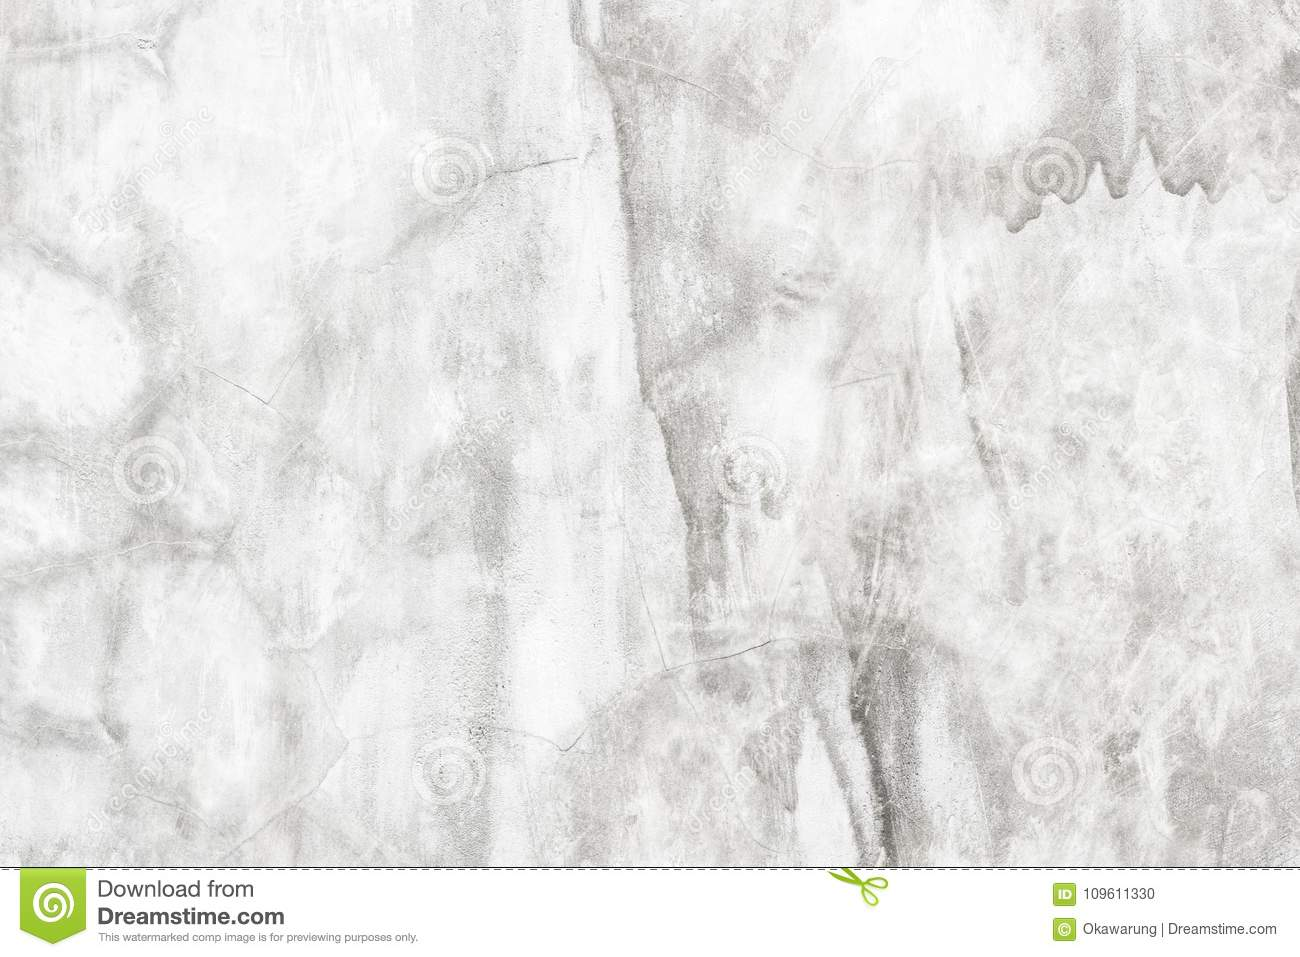 Old grunge textured wall background/white concrete texture background of natural cement or stone old texture as a retro pattern wa